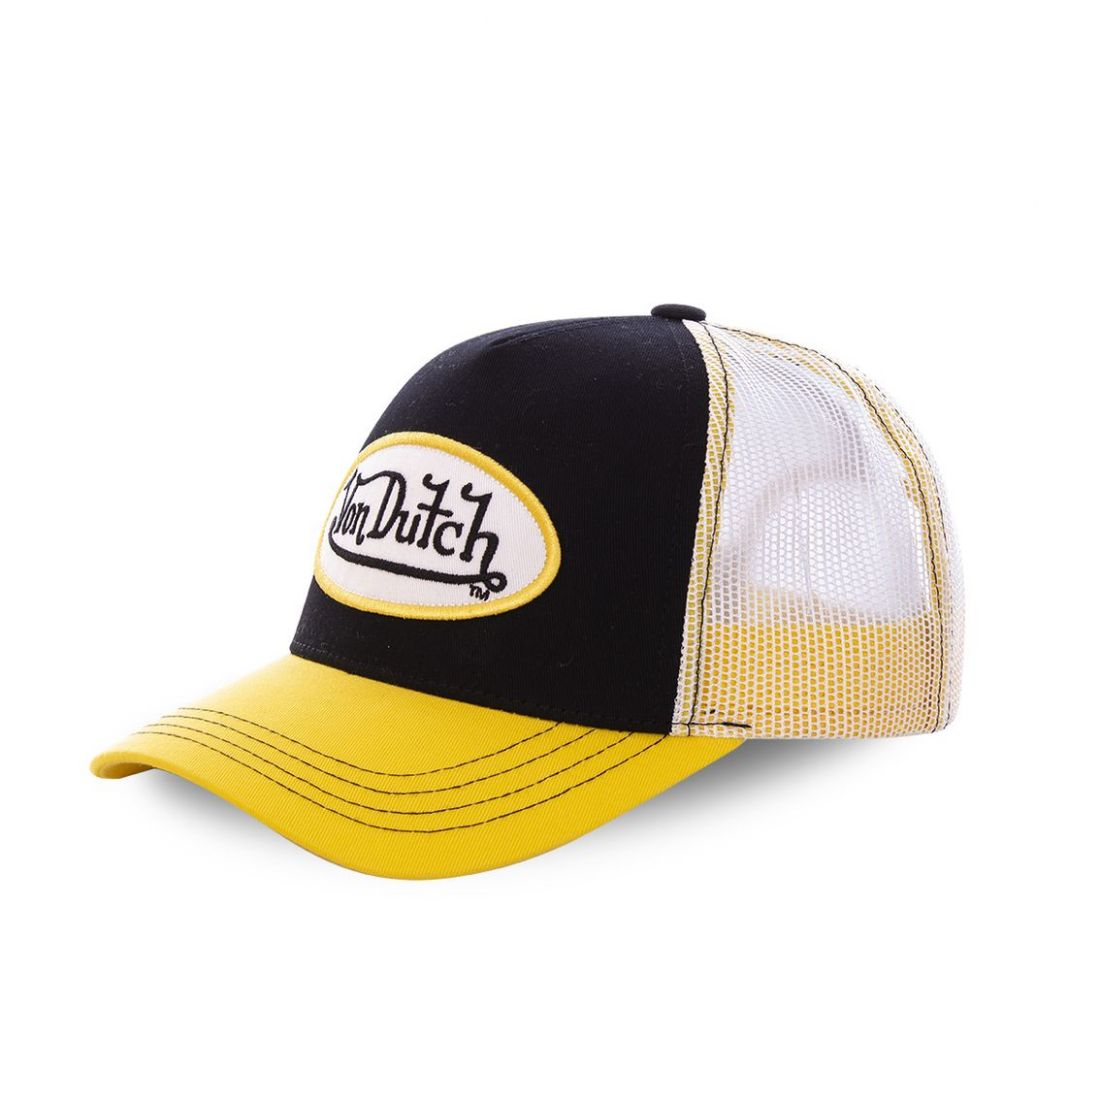 Casquette baseball Von Dutch Colors Jaune et Noir